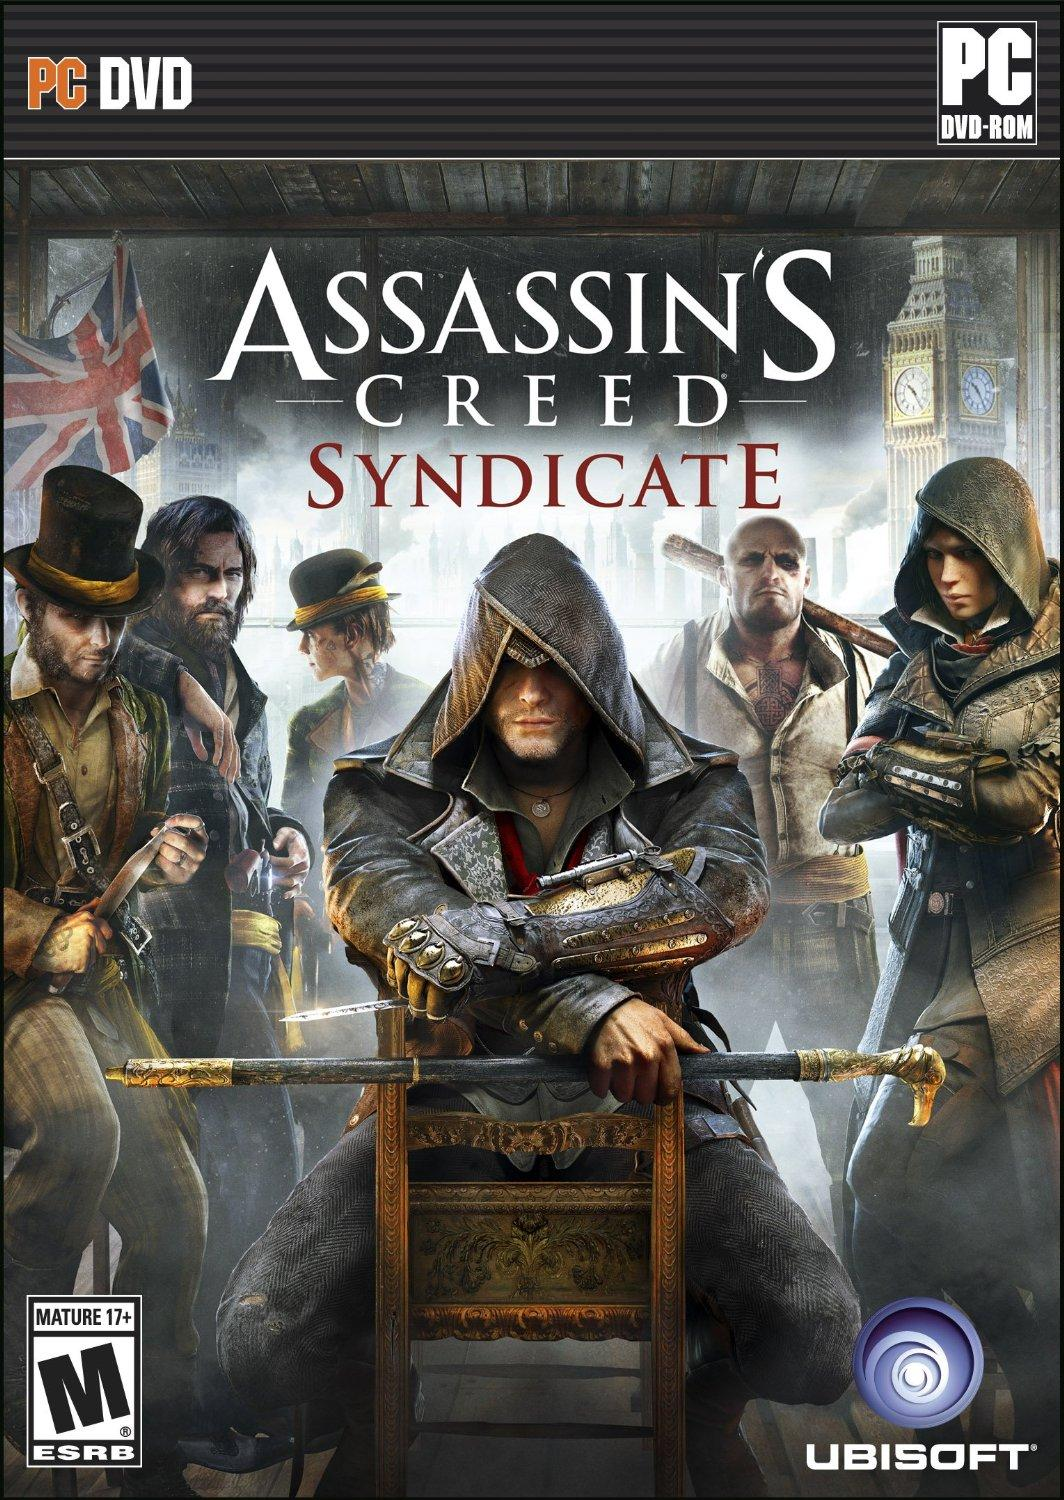 Up To 50% Off Assassin's Creed Syndicate